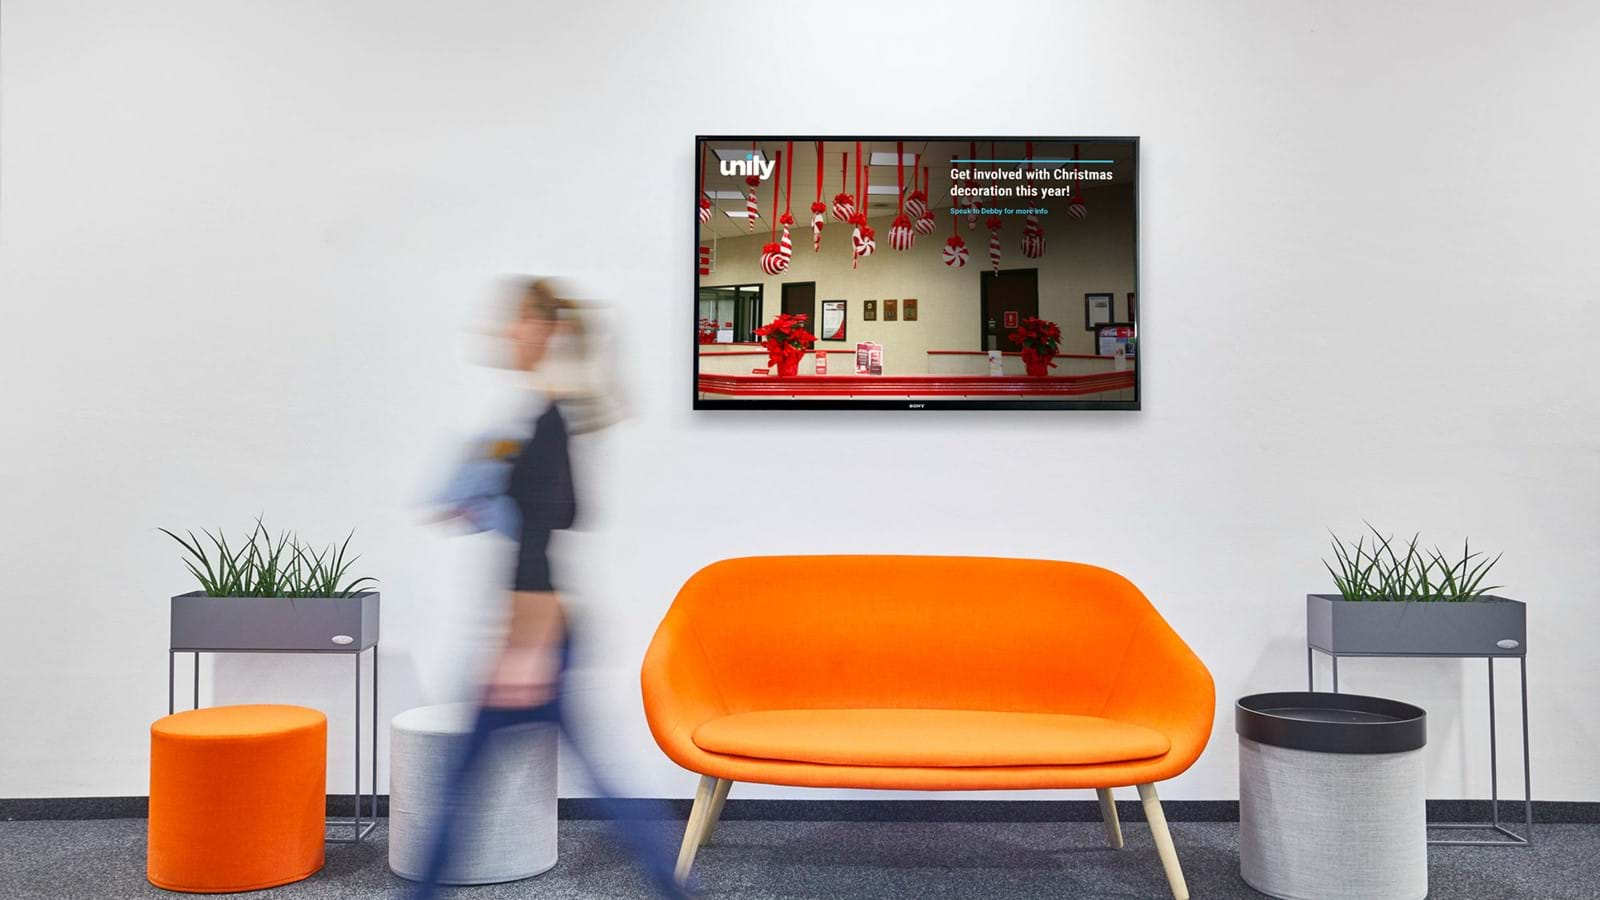 Digital signage using intranets in the modern world